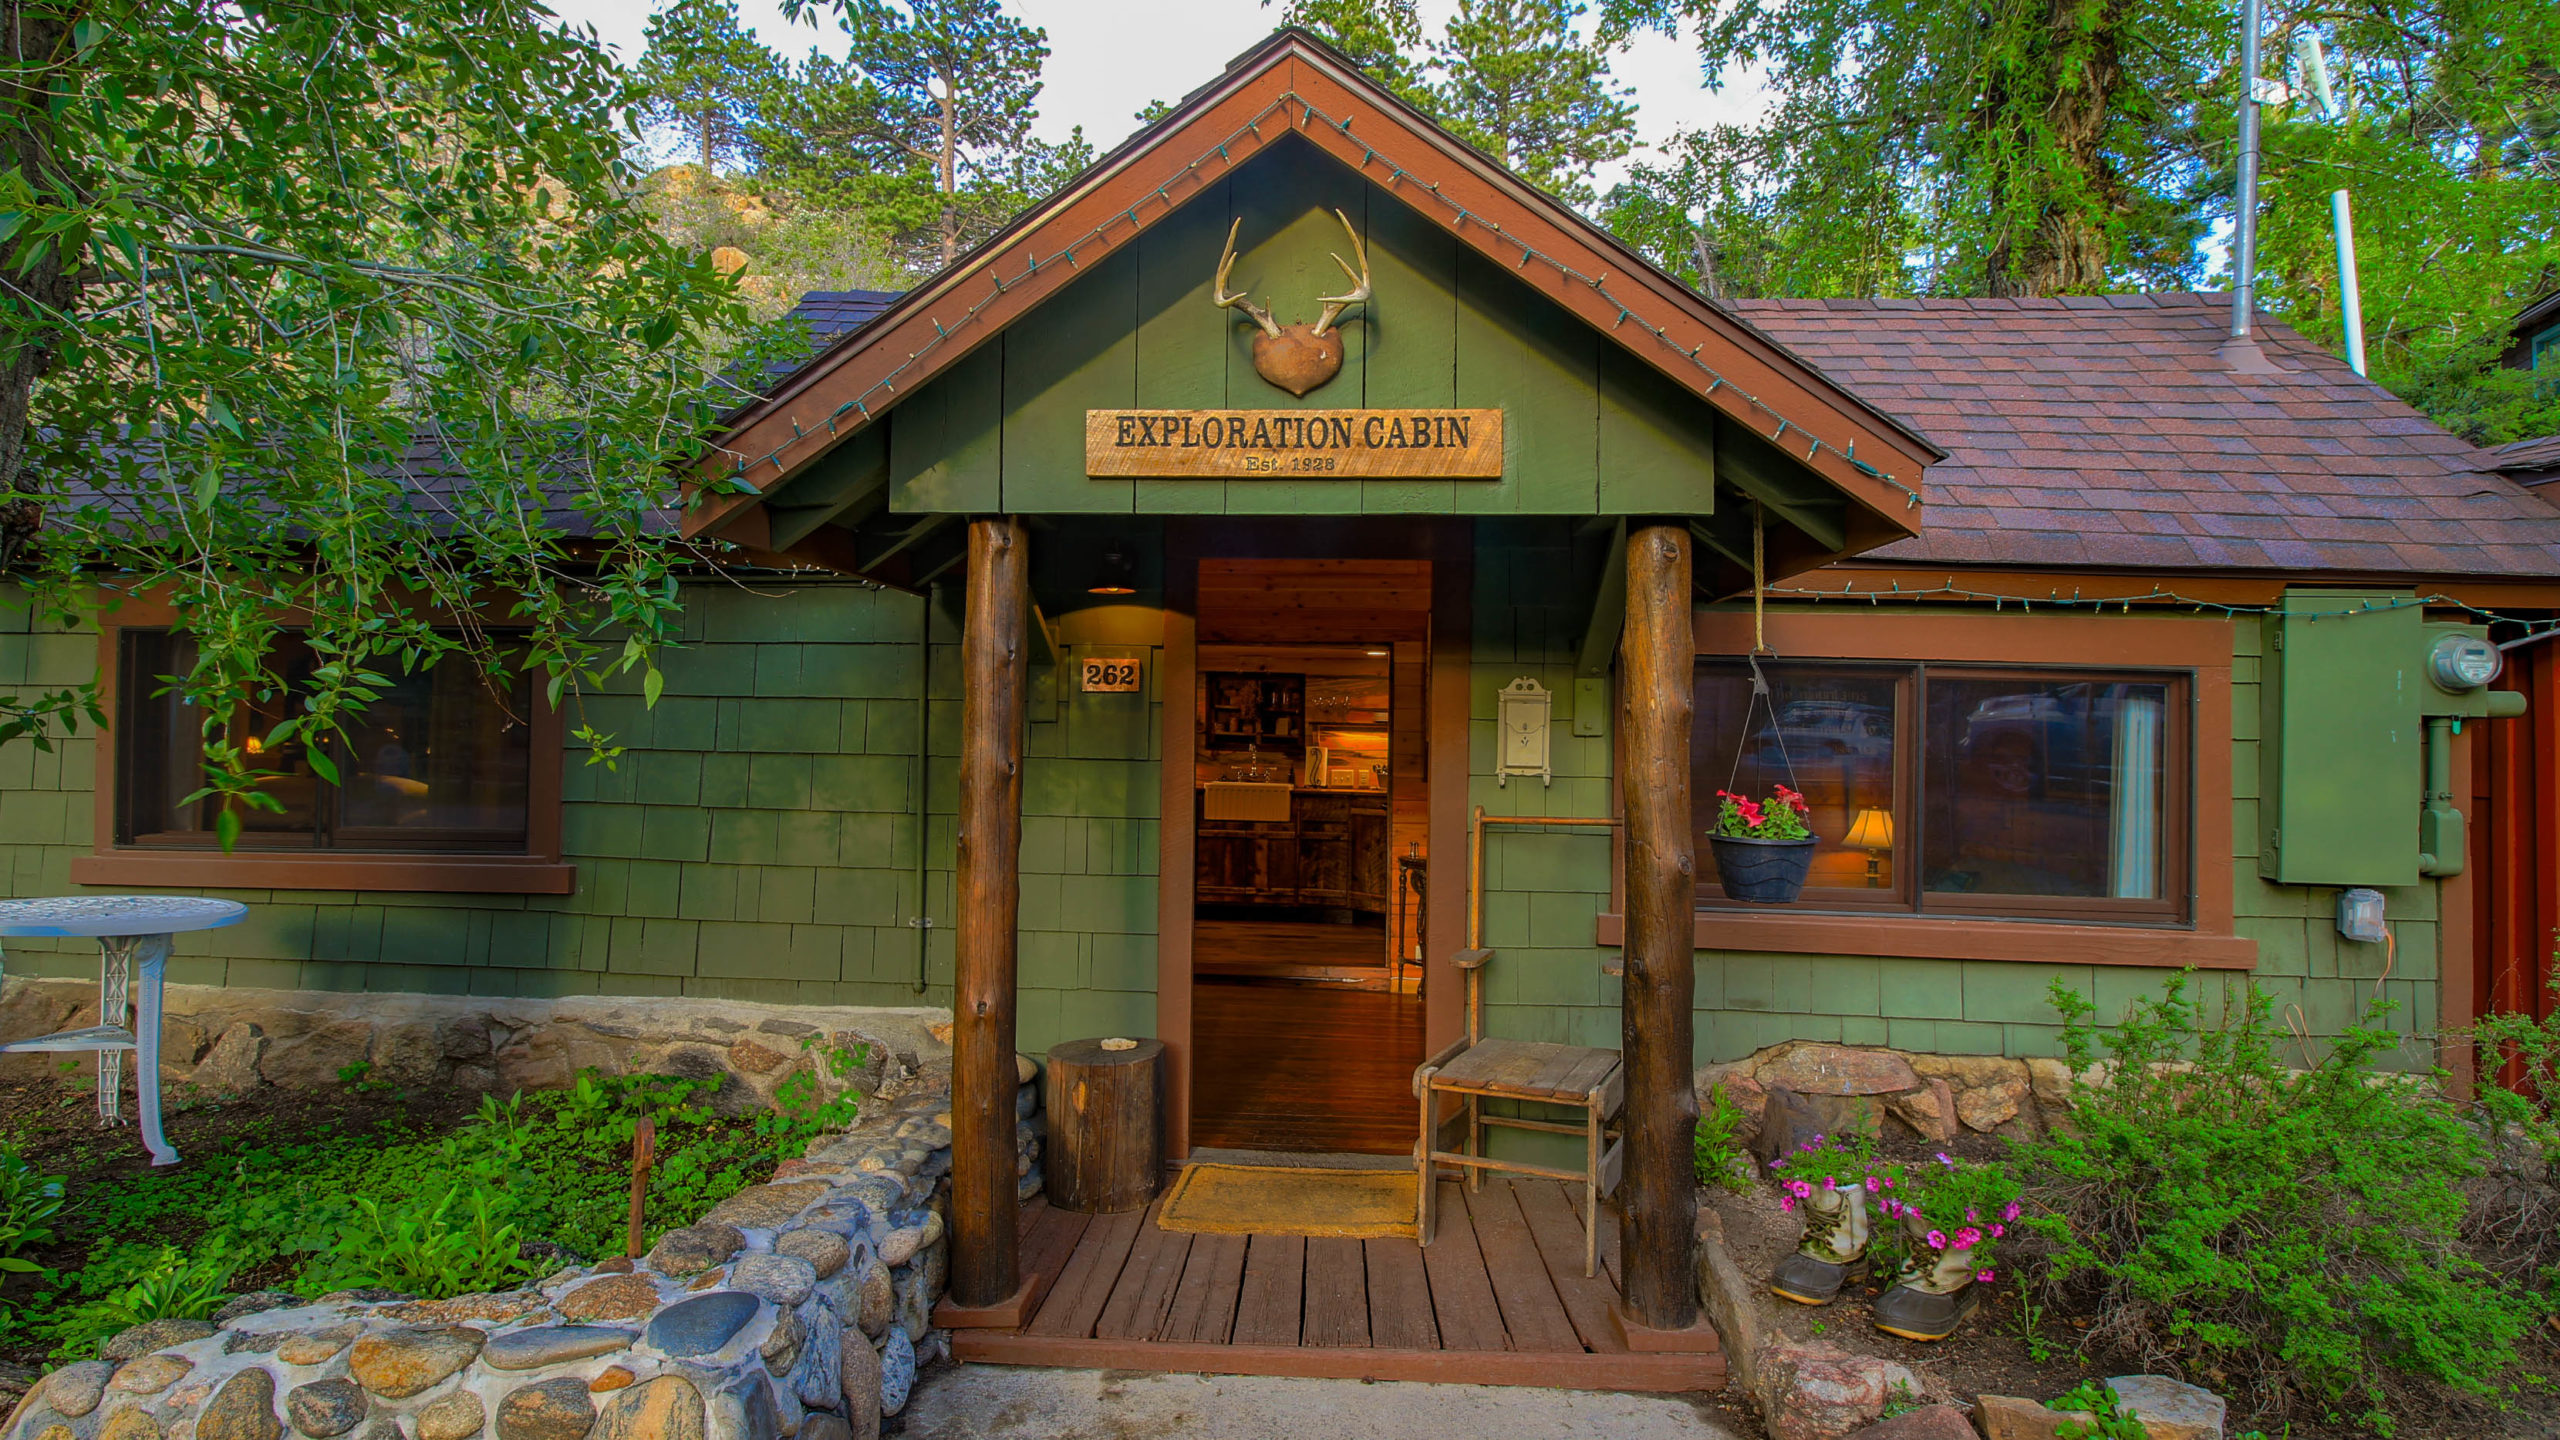 This is an image of Storybook Exploration Cabin is an Extraordinary Mountain Town Vacation Home in Estes Park CO near Rocky Mountain National Park.